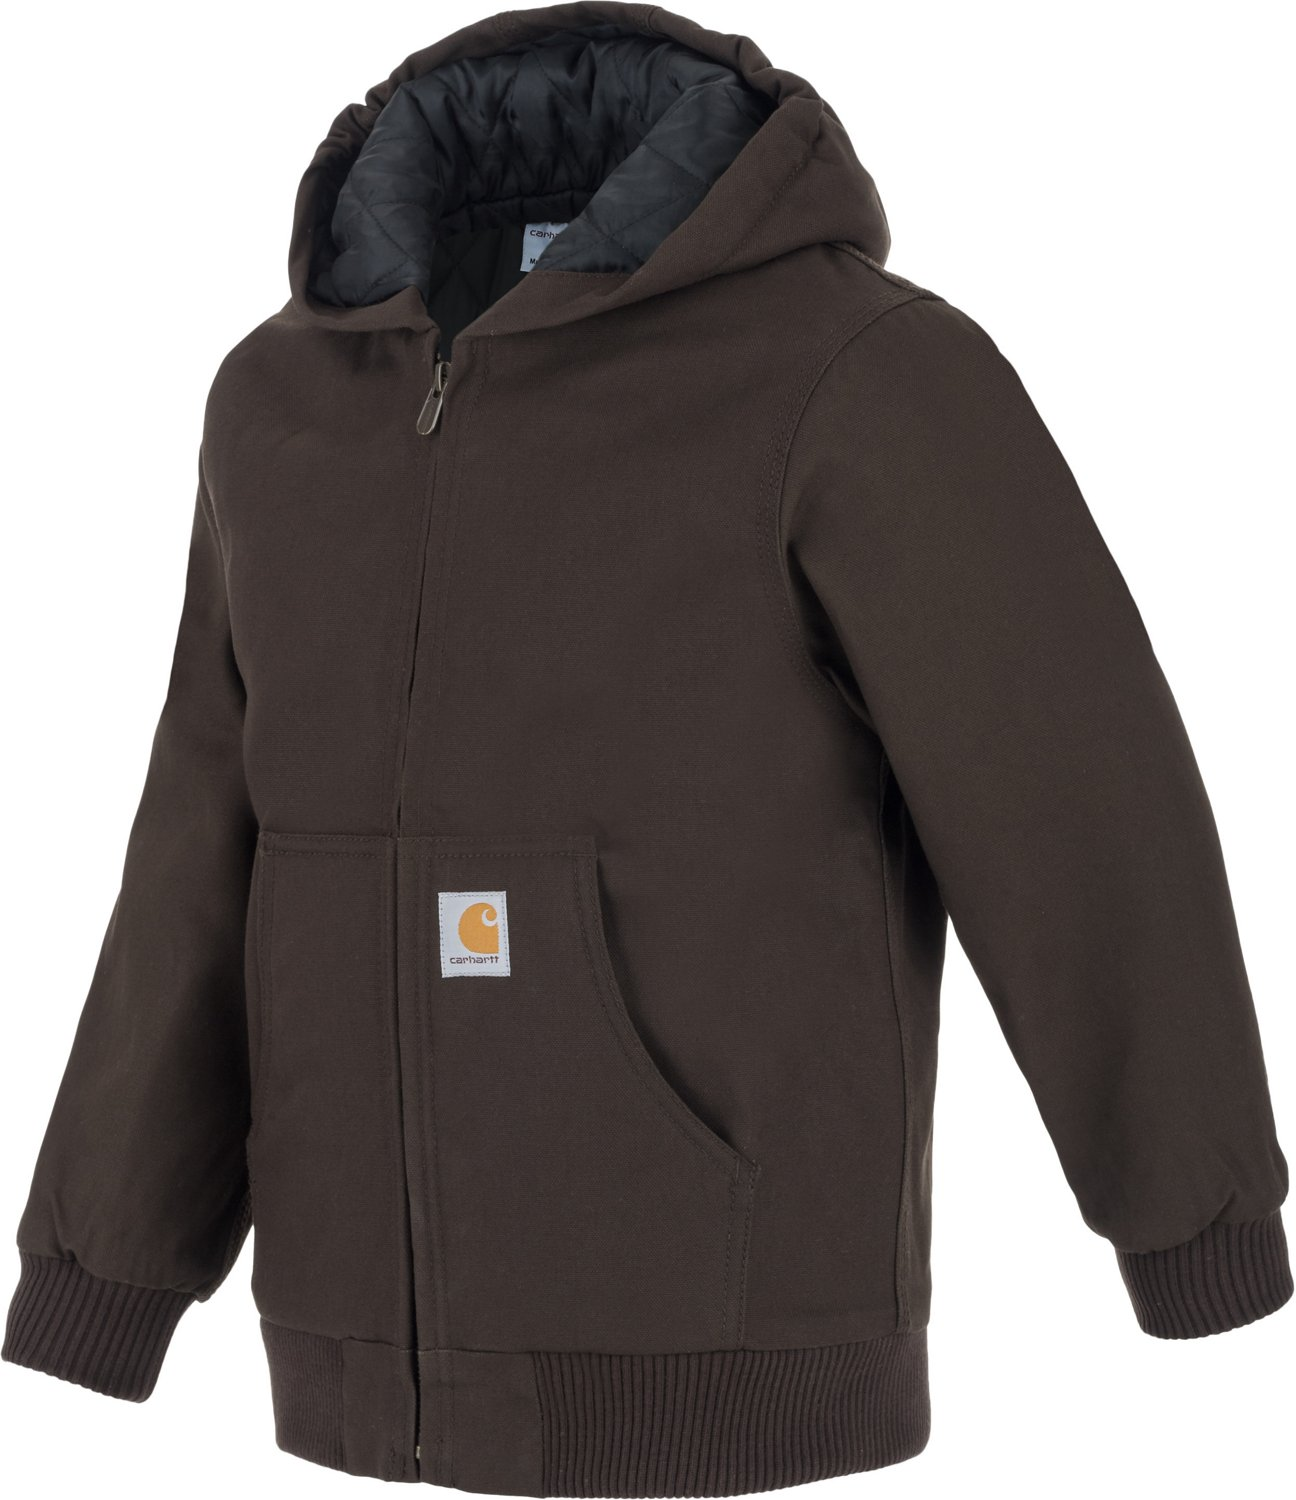 a7428e09 Display product reviews for Carhartt Girls' Work Active Jacket